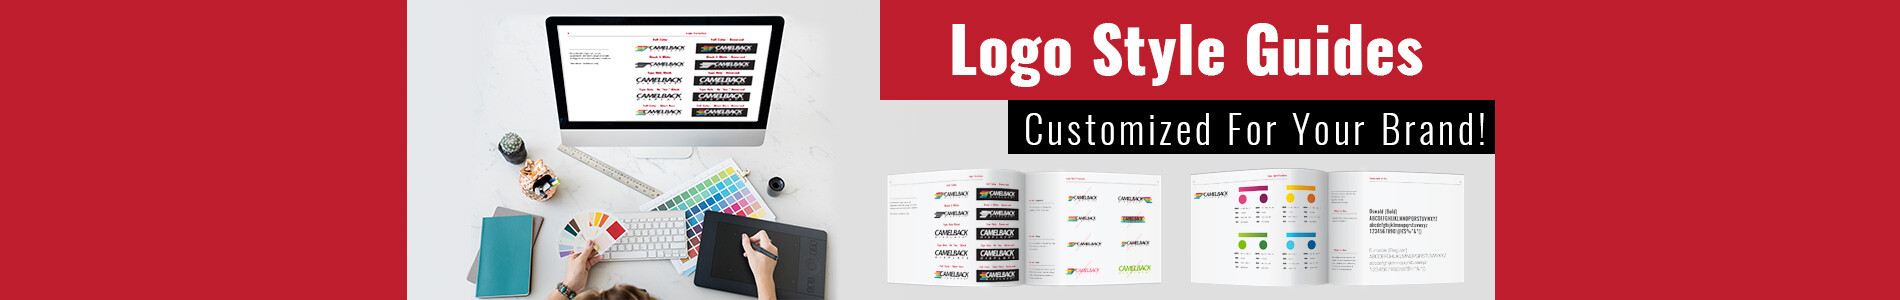 logo-style-guides